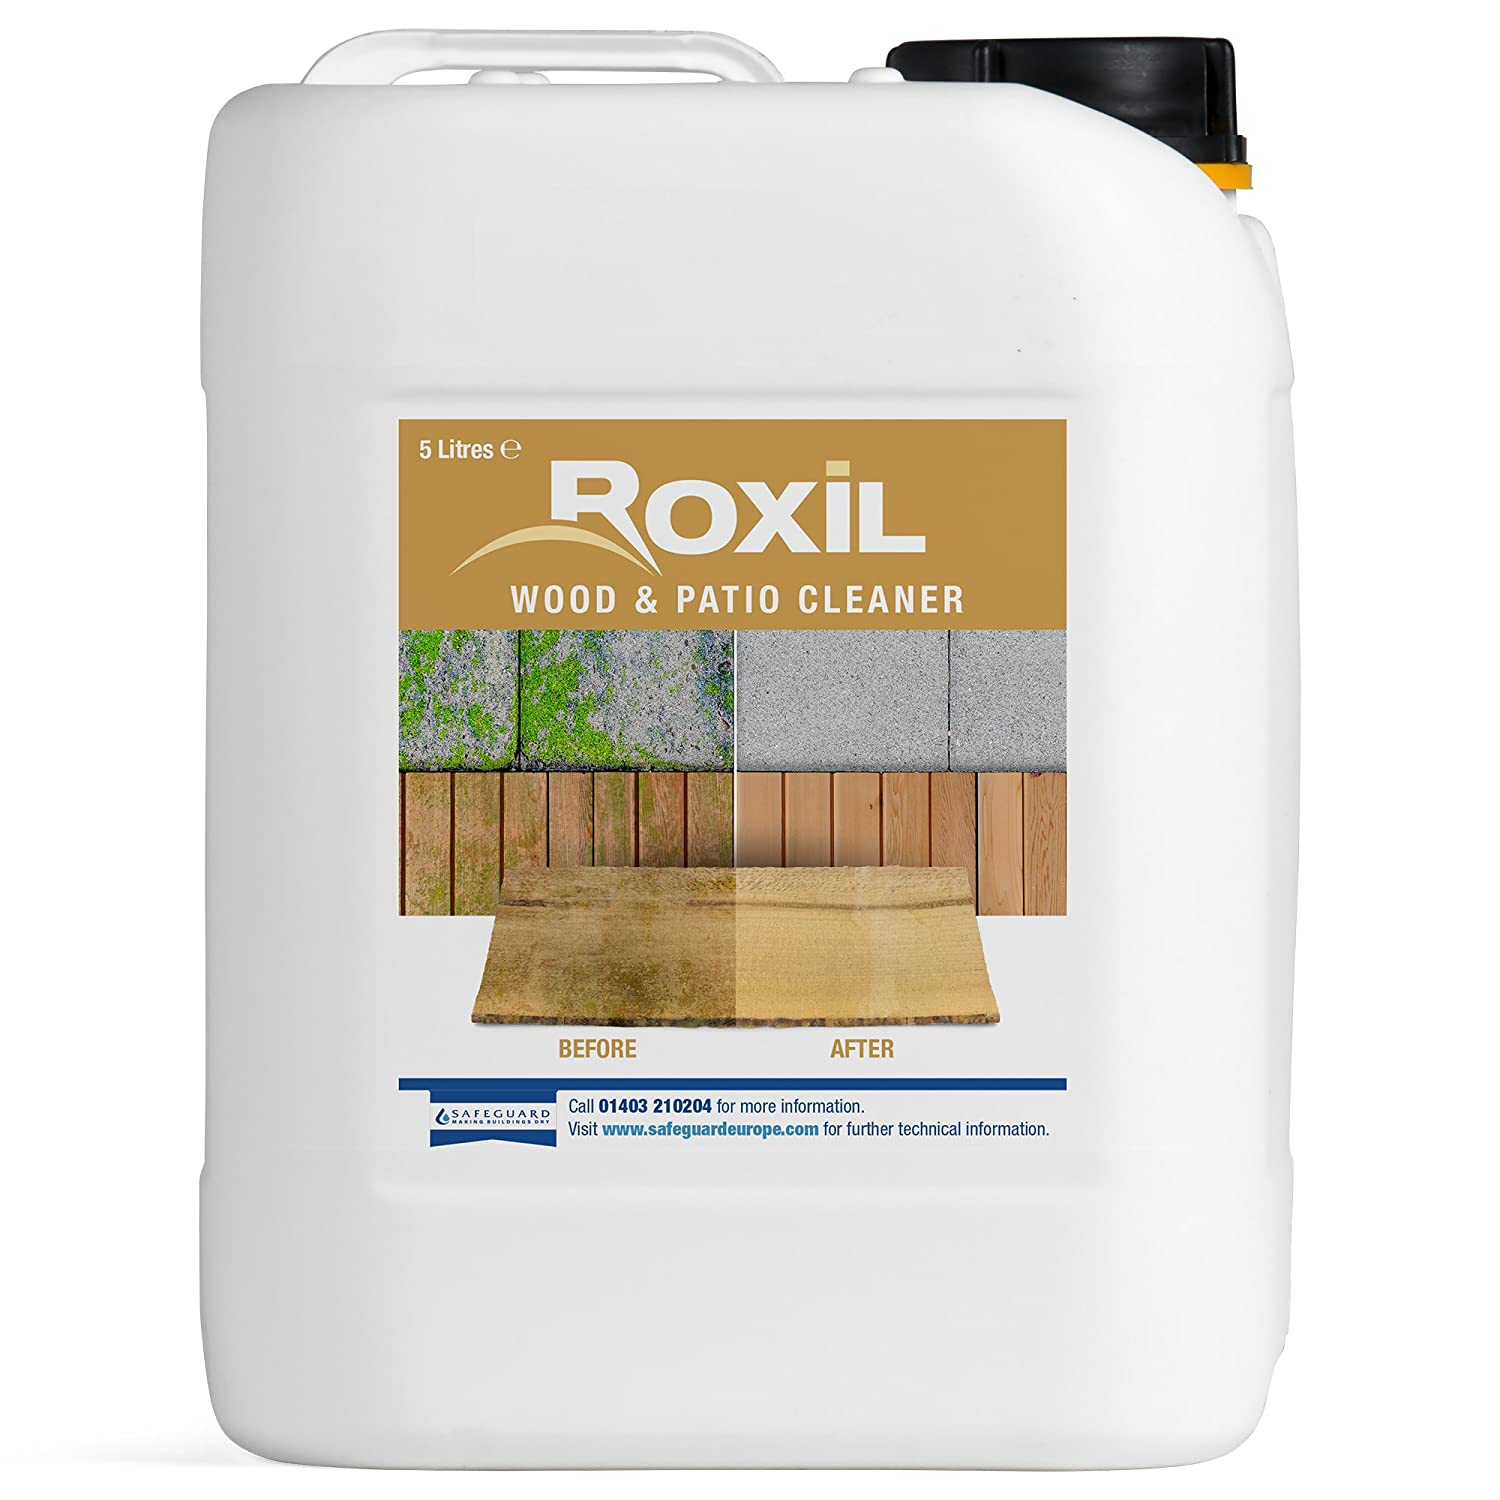 Roxil Wood & Patio Cleaner - Cleans decking, fencing, wooden structures, patios and paving - 5 Litres Safeguard Europe